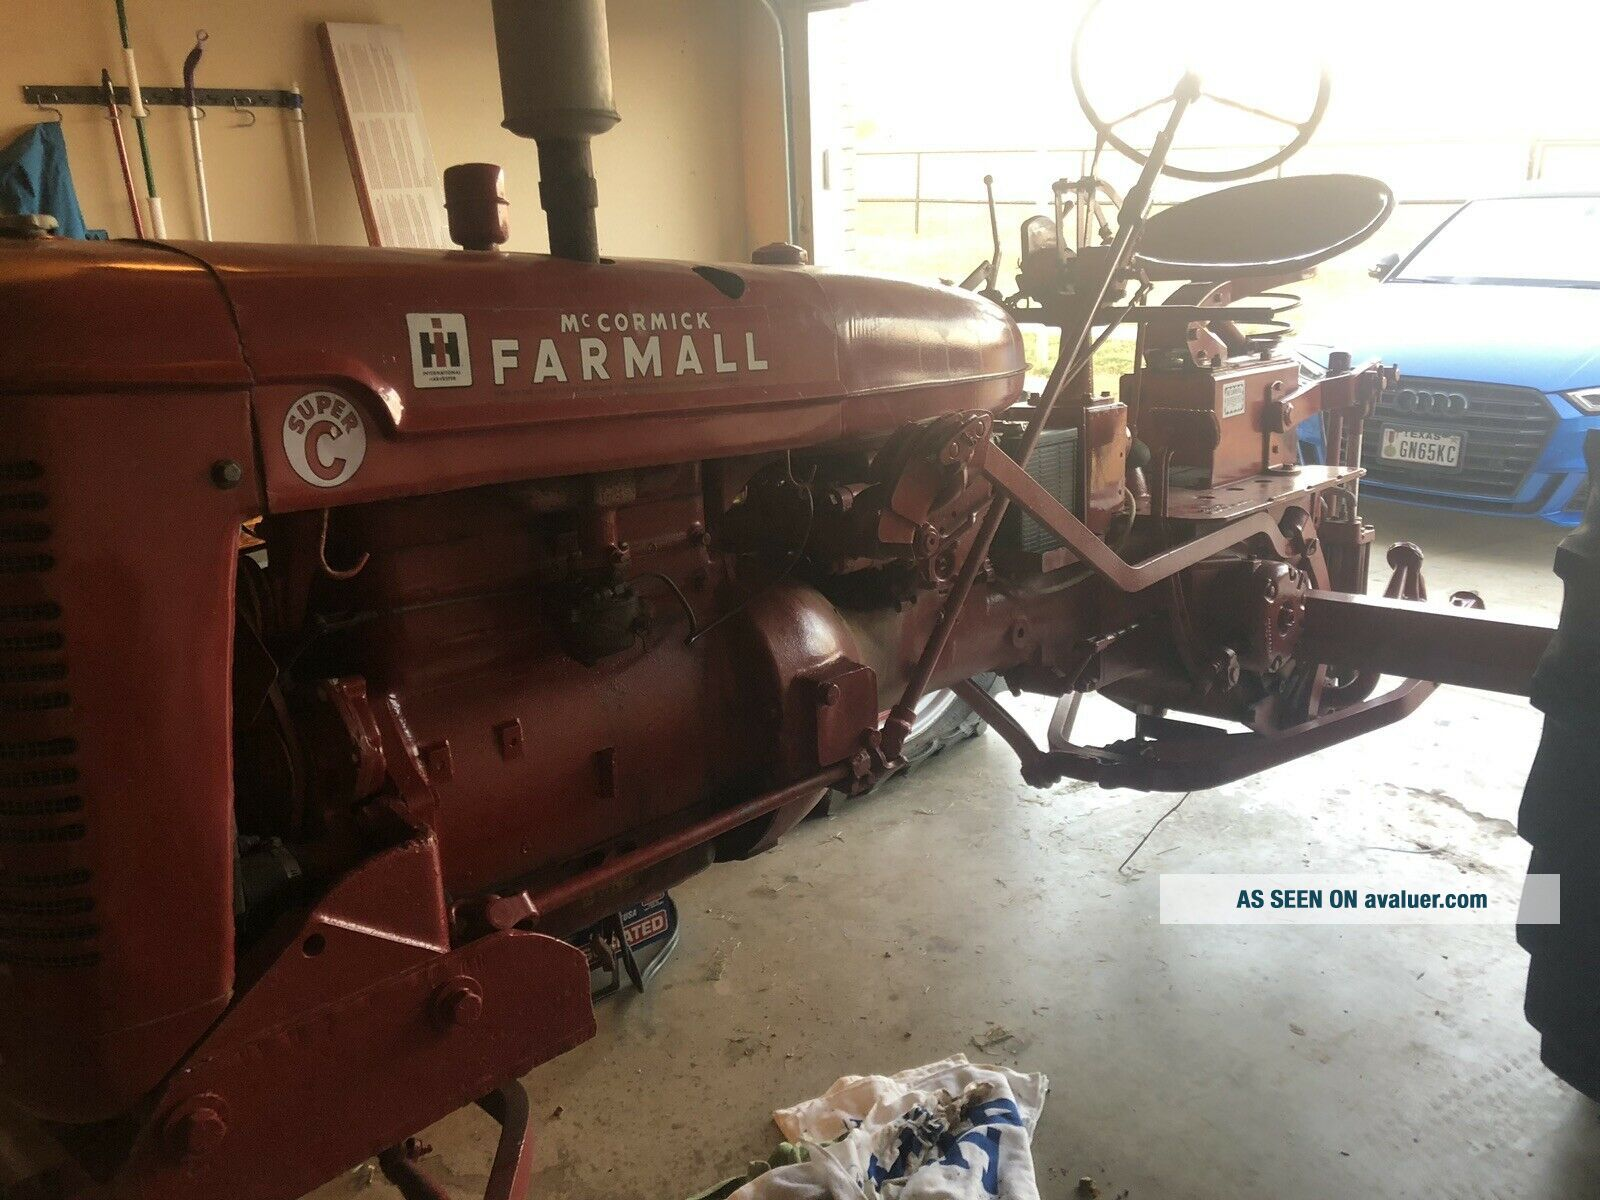 Vintage Farmall c International Harvester tractor